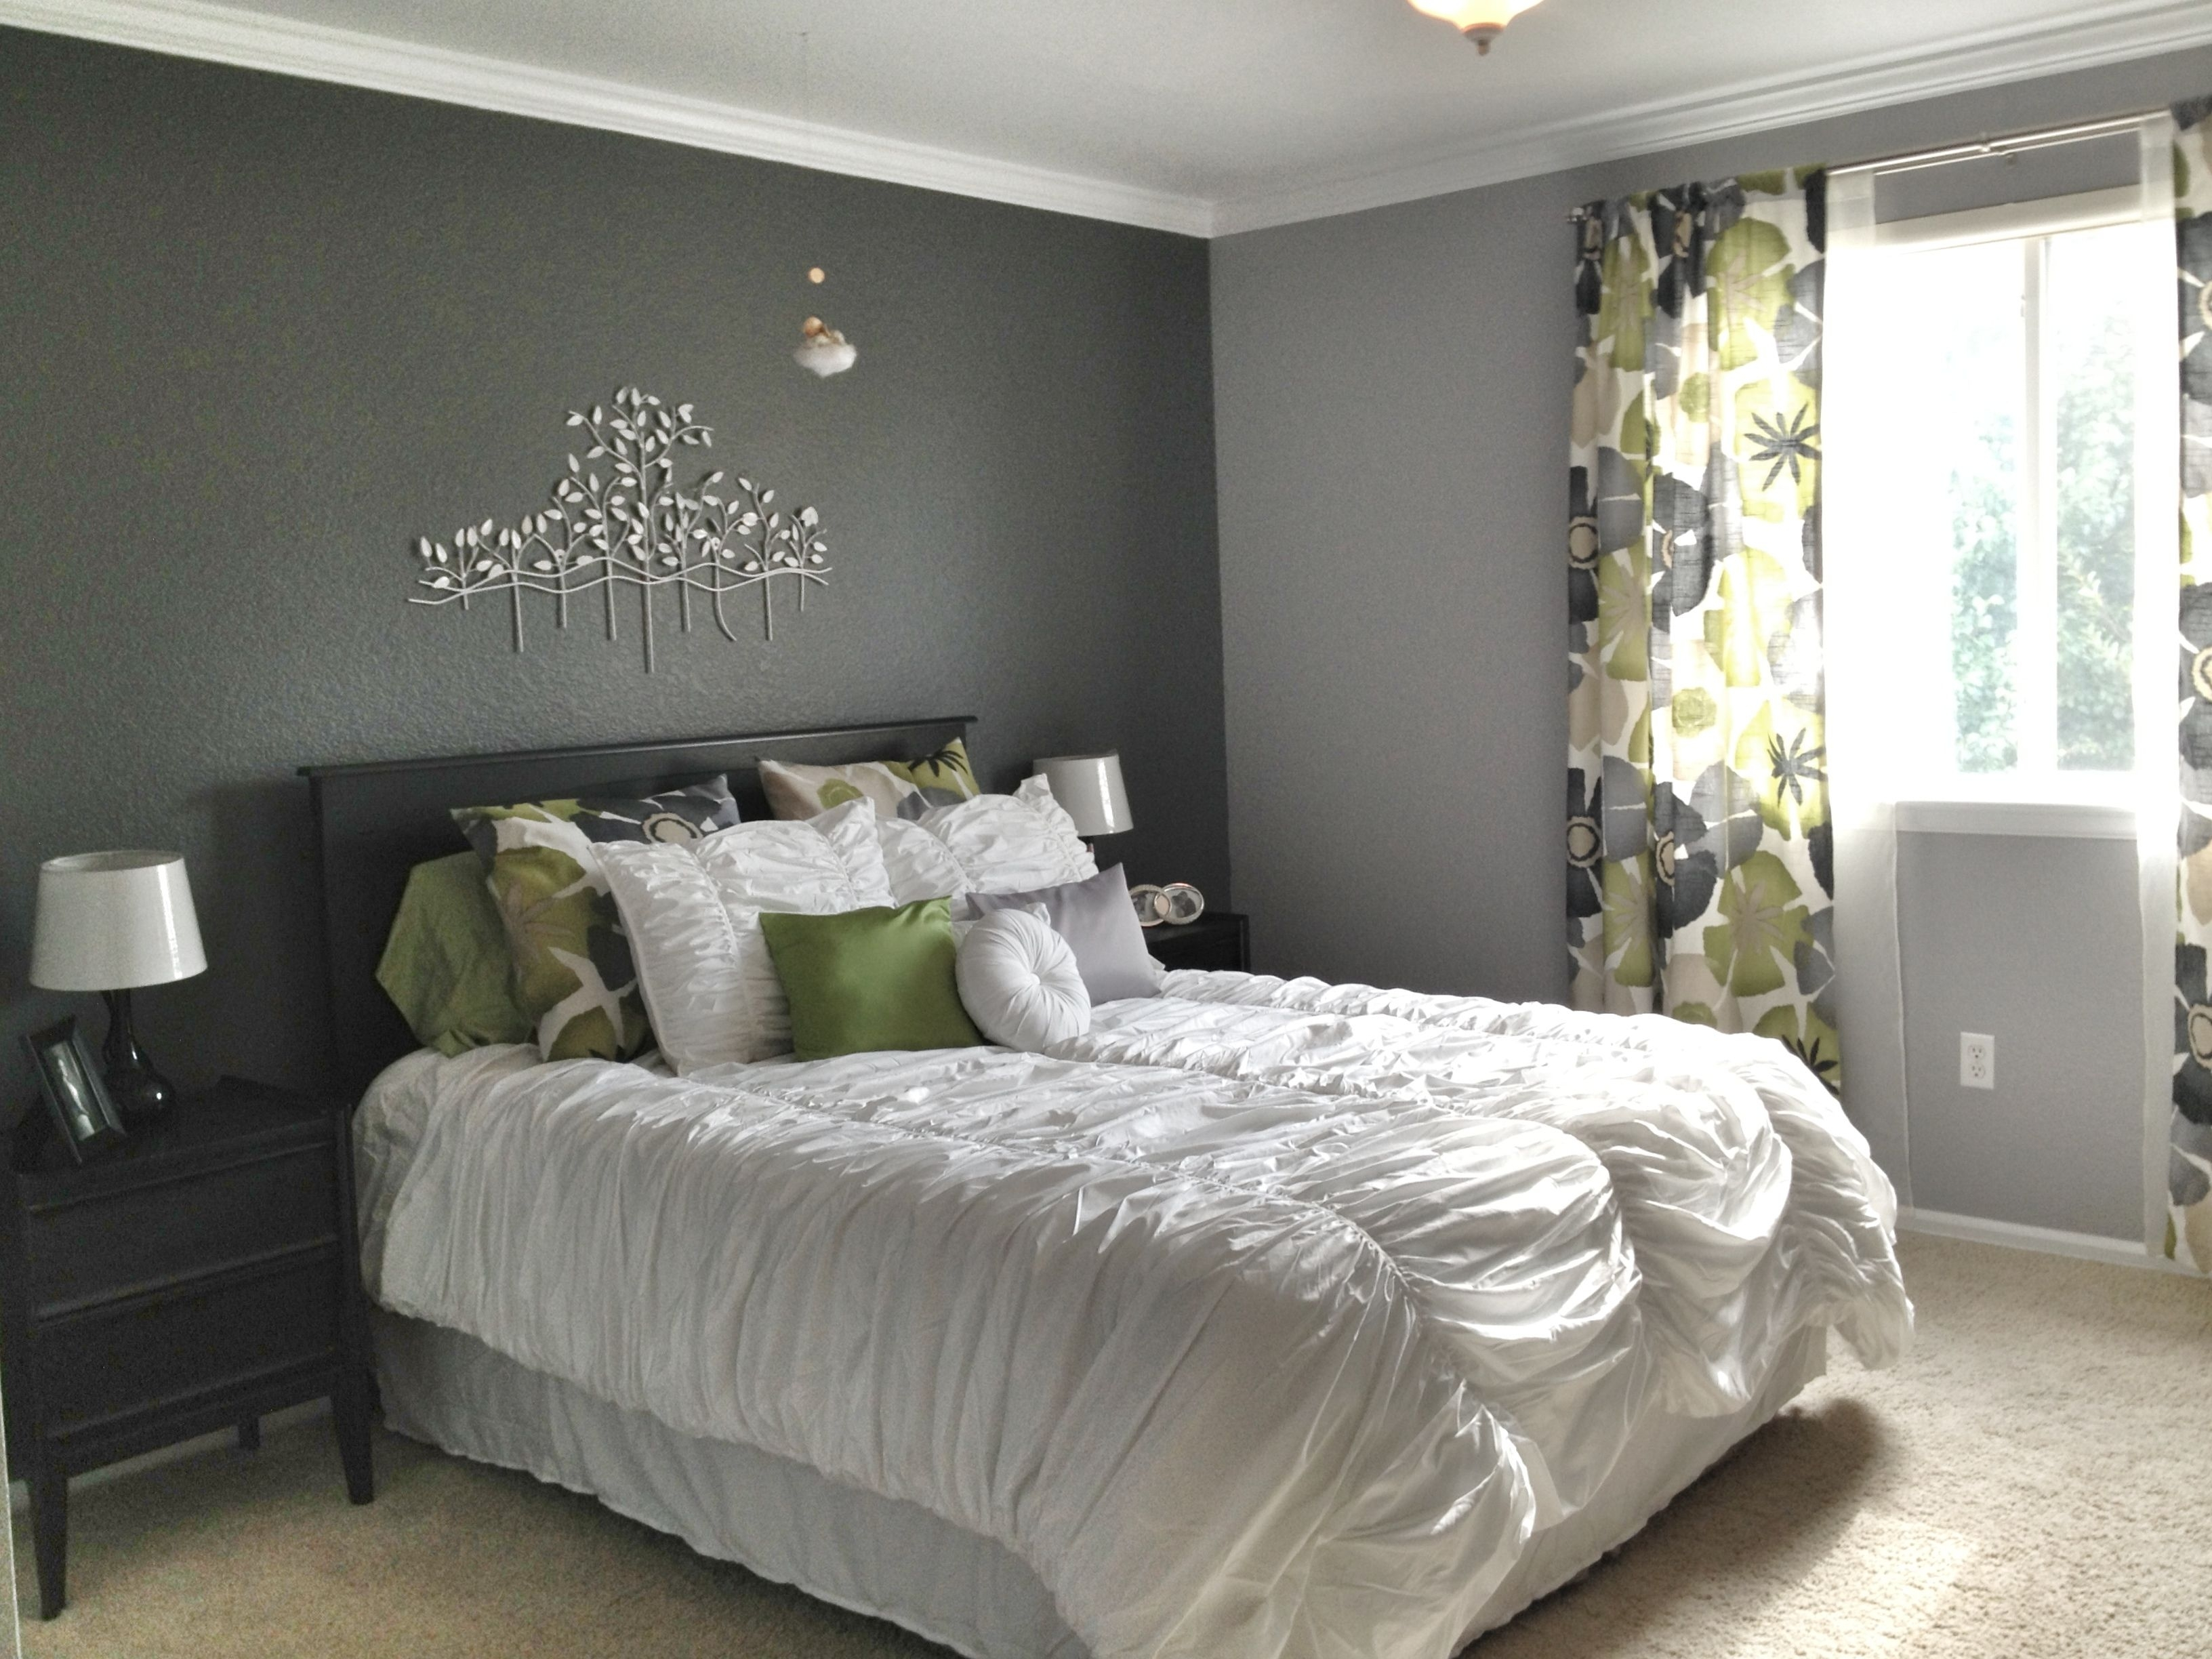 Grey Master Bedroom – Dark Accent Wall, Fun Patterned Curtains Inside Newest Grey And White Wall Accents (Gallery 1 of 15)